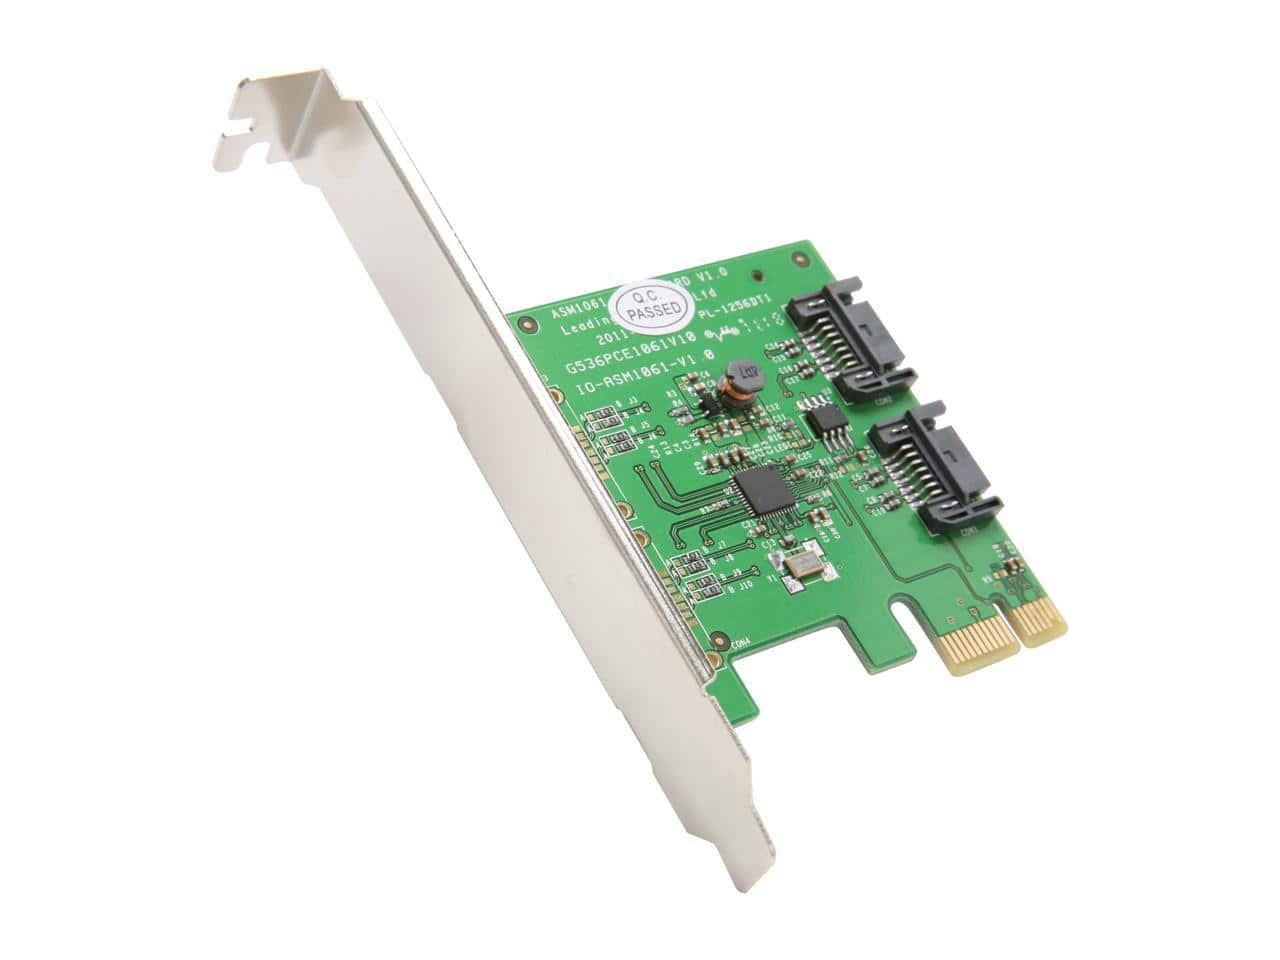 Syba SY-PEX40039 SATA III (6.0Gb/s) PCI-e 2.0 x1 Controller Card for Free After Rebate & More + S&H (Free Ship w/ Premier) @ Newegg